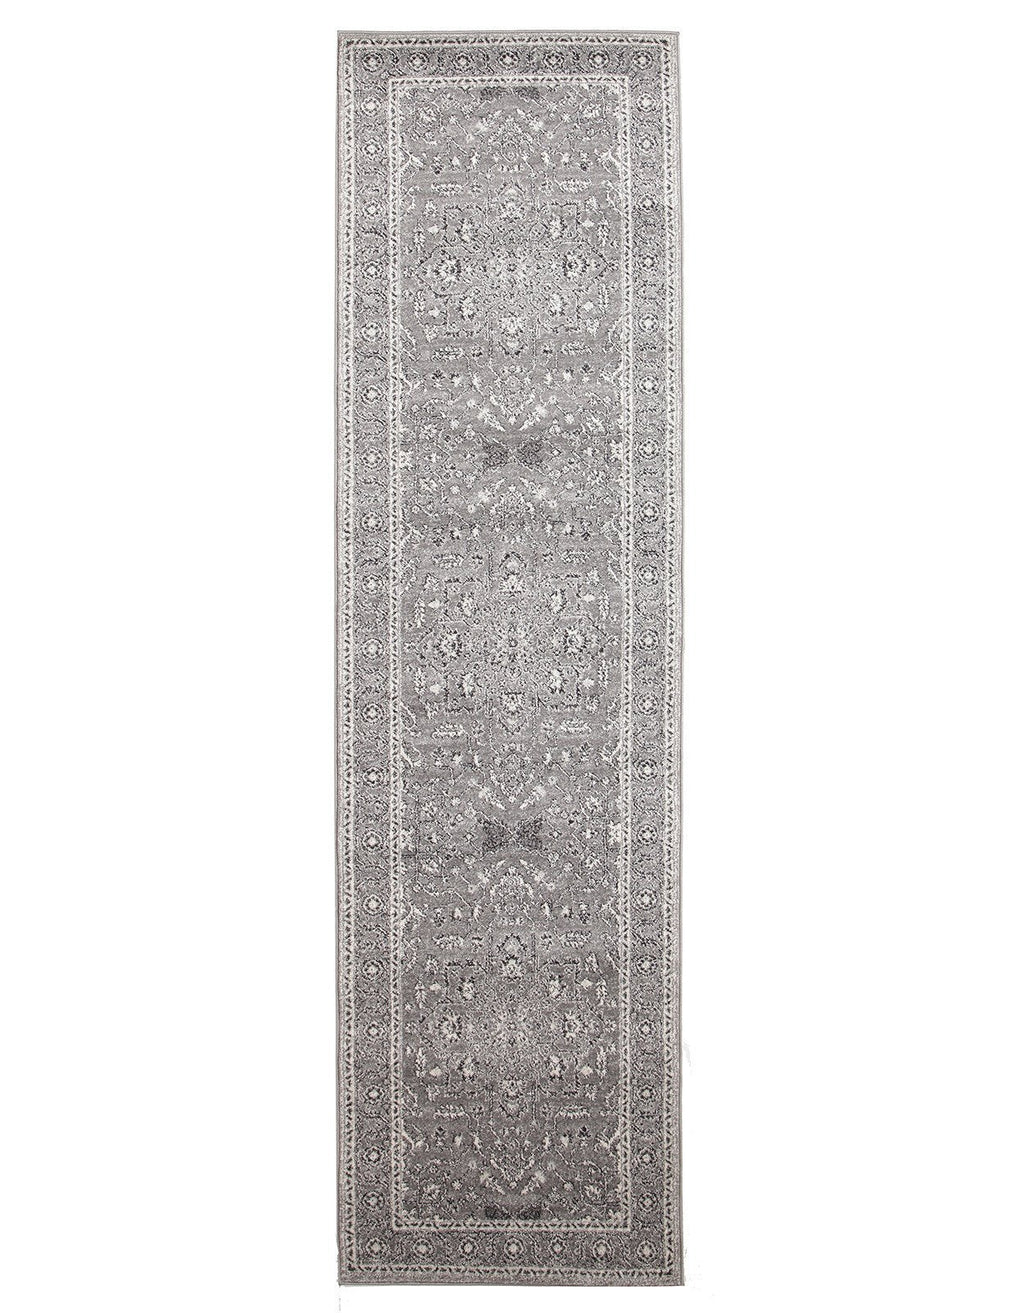 Evoke Stone Grey Transitional Runner Rug